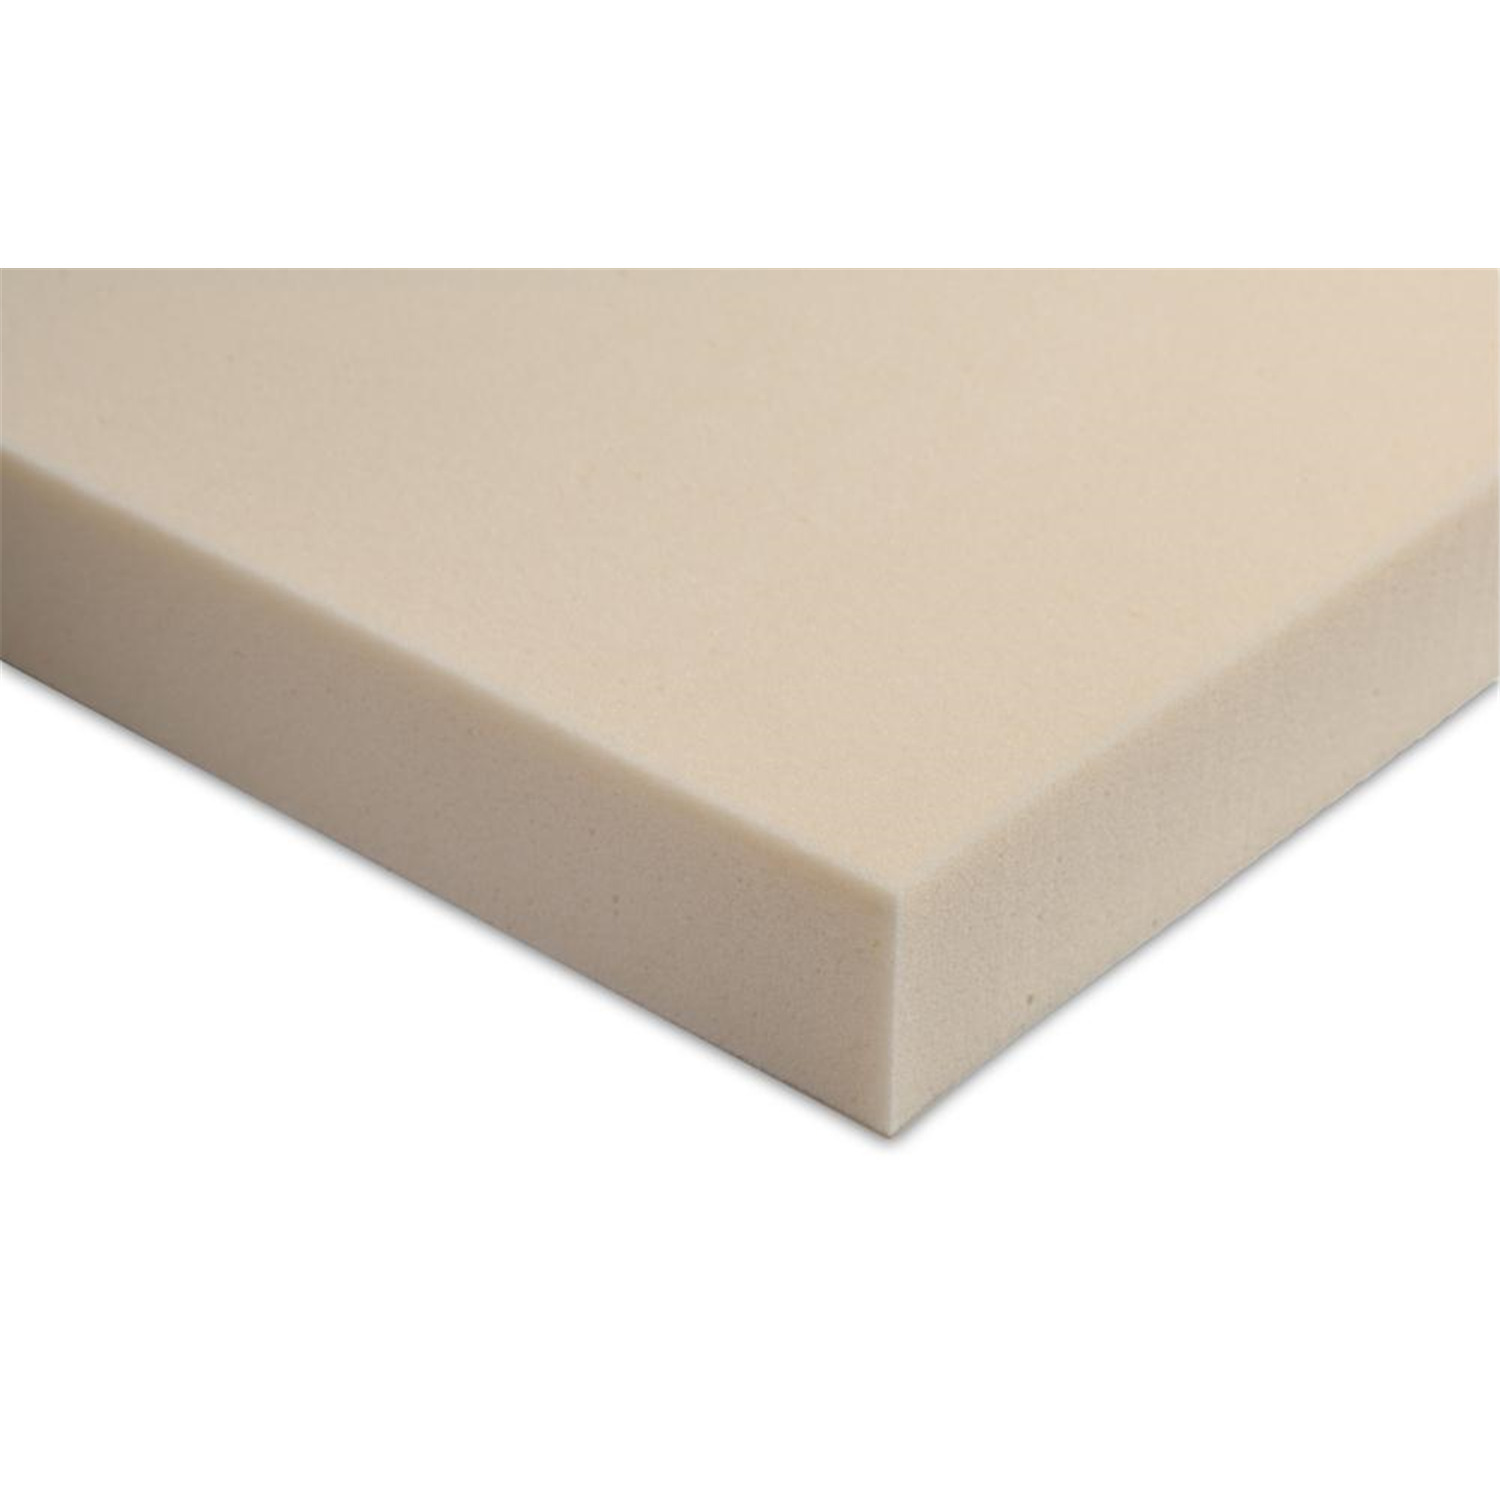 Latex foam mattress pads best naked ladies Where to buy mattress foam